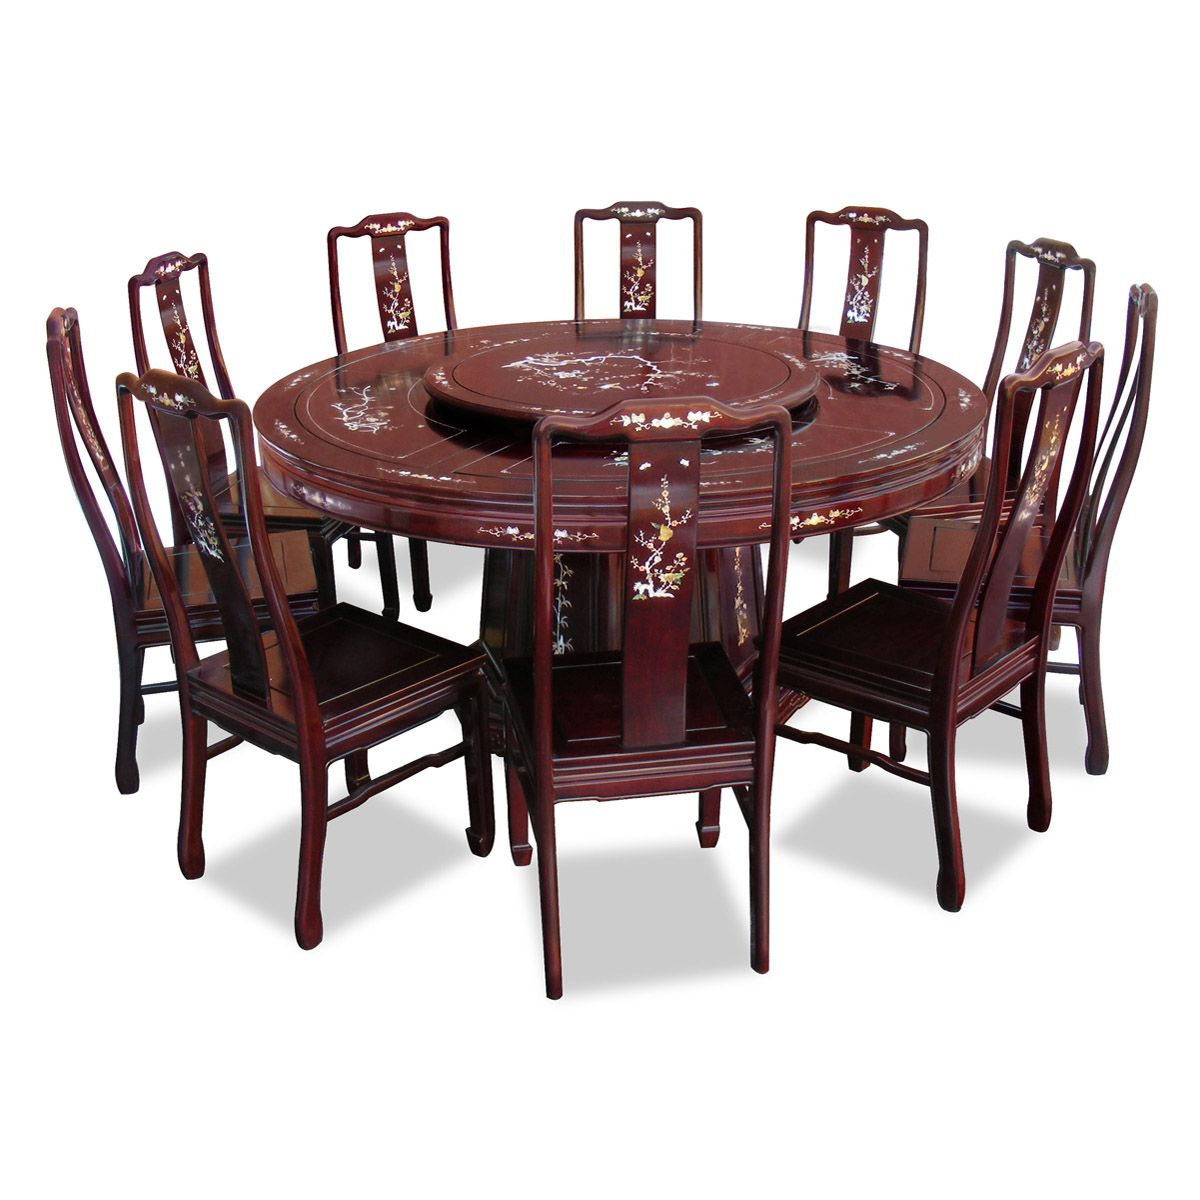 Oriental Dining Table   Global Style